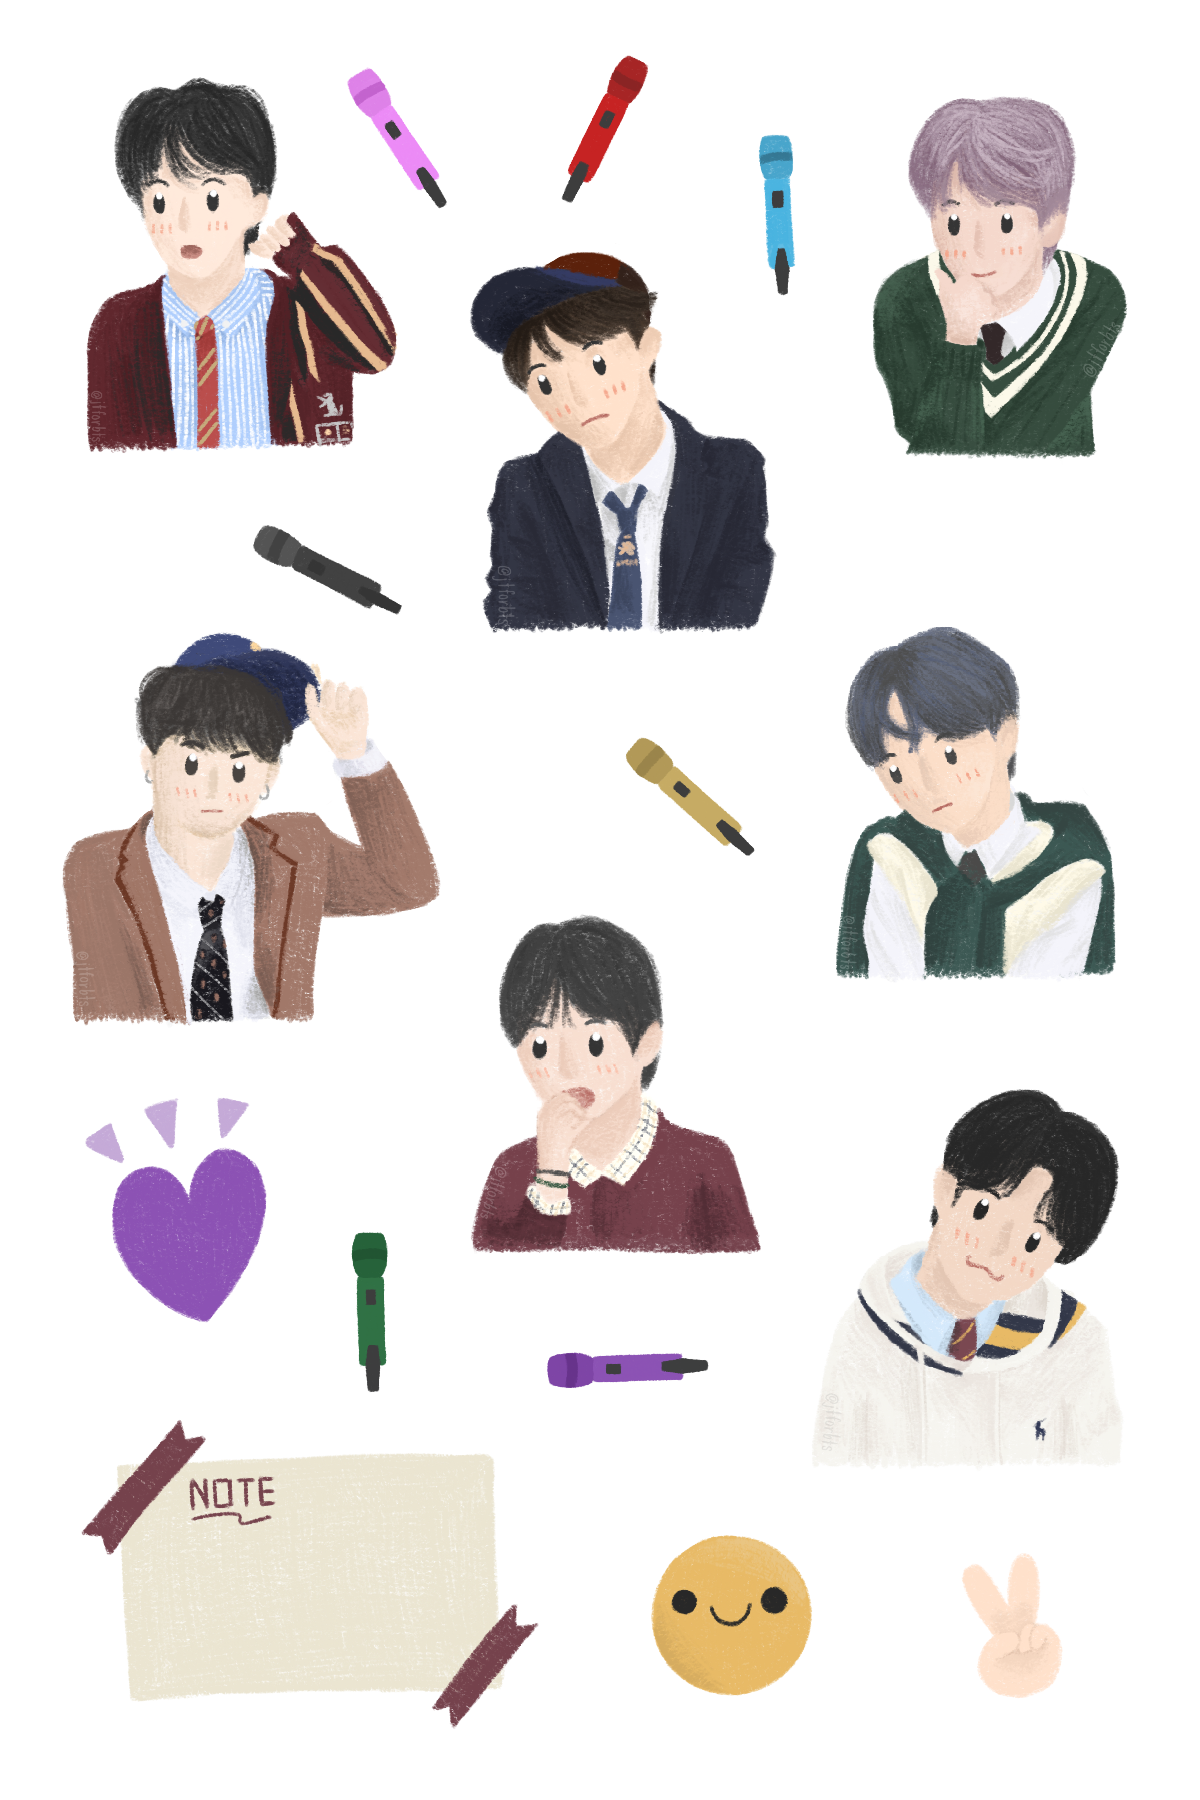 Awesome Bts Journal Stickers wallpapers to download for free greenvirals